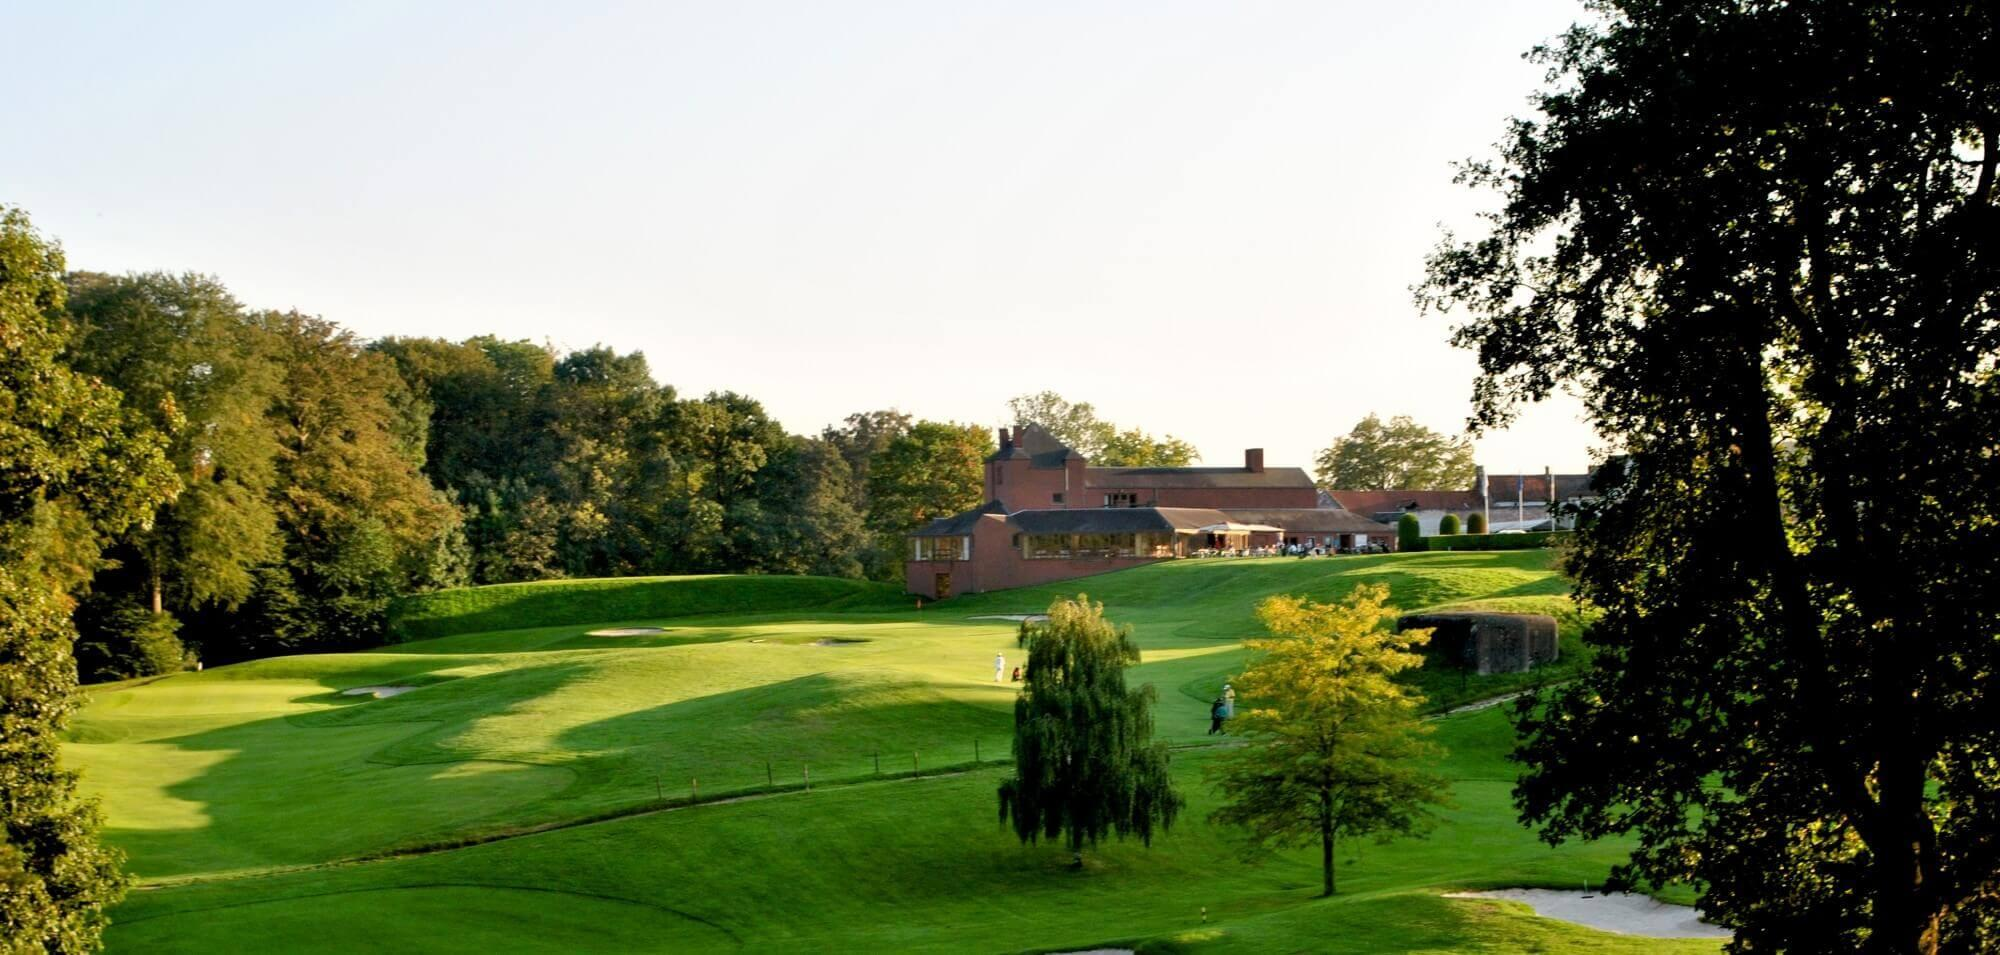 The Golf du Chateau de la Bawette's picturesque golf course in incredible Brussels Waterloo & Mons.